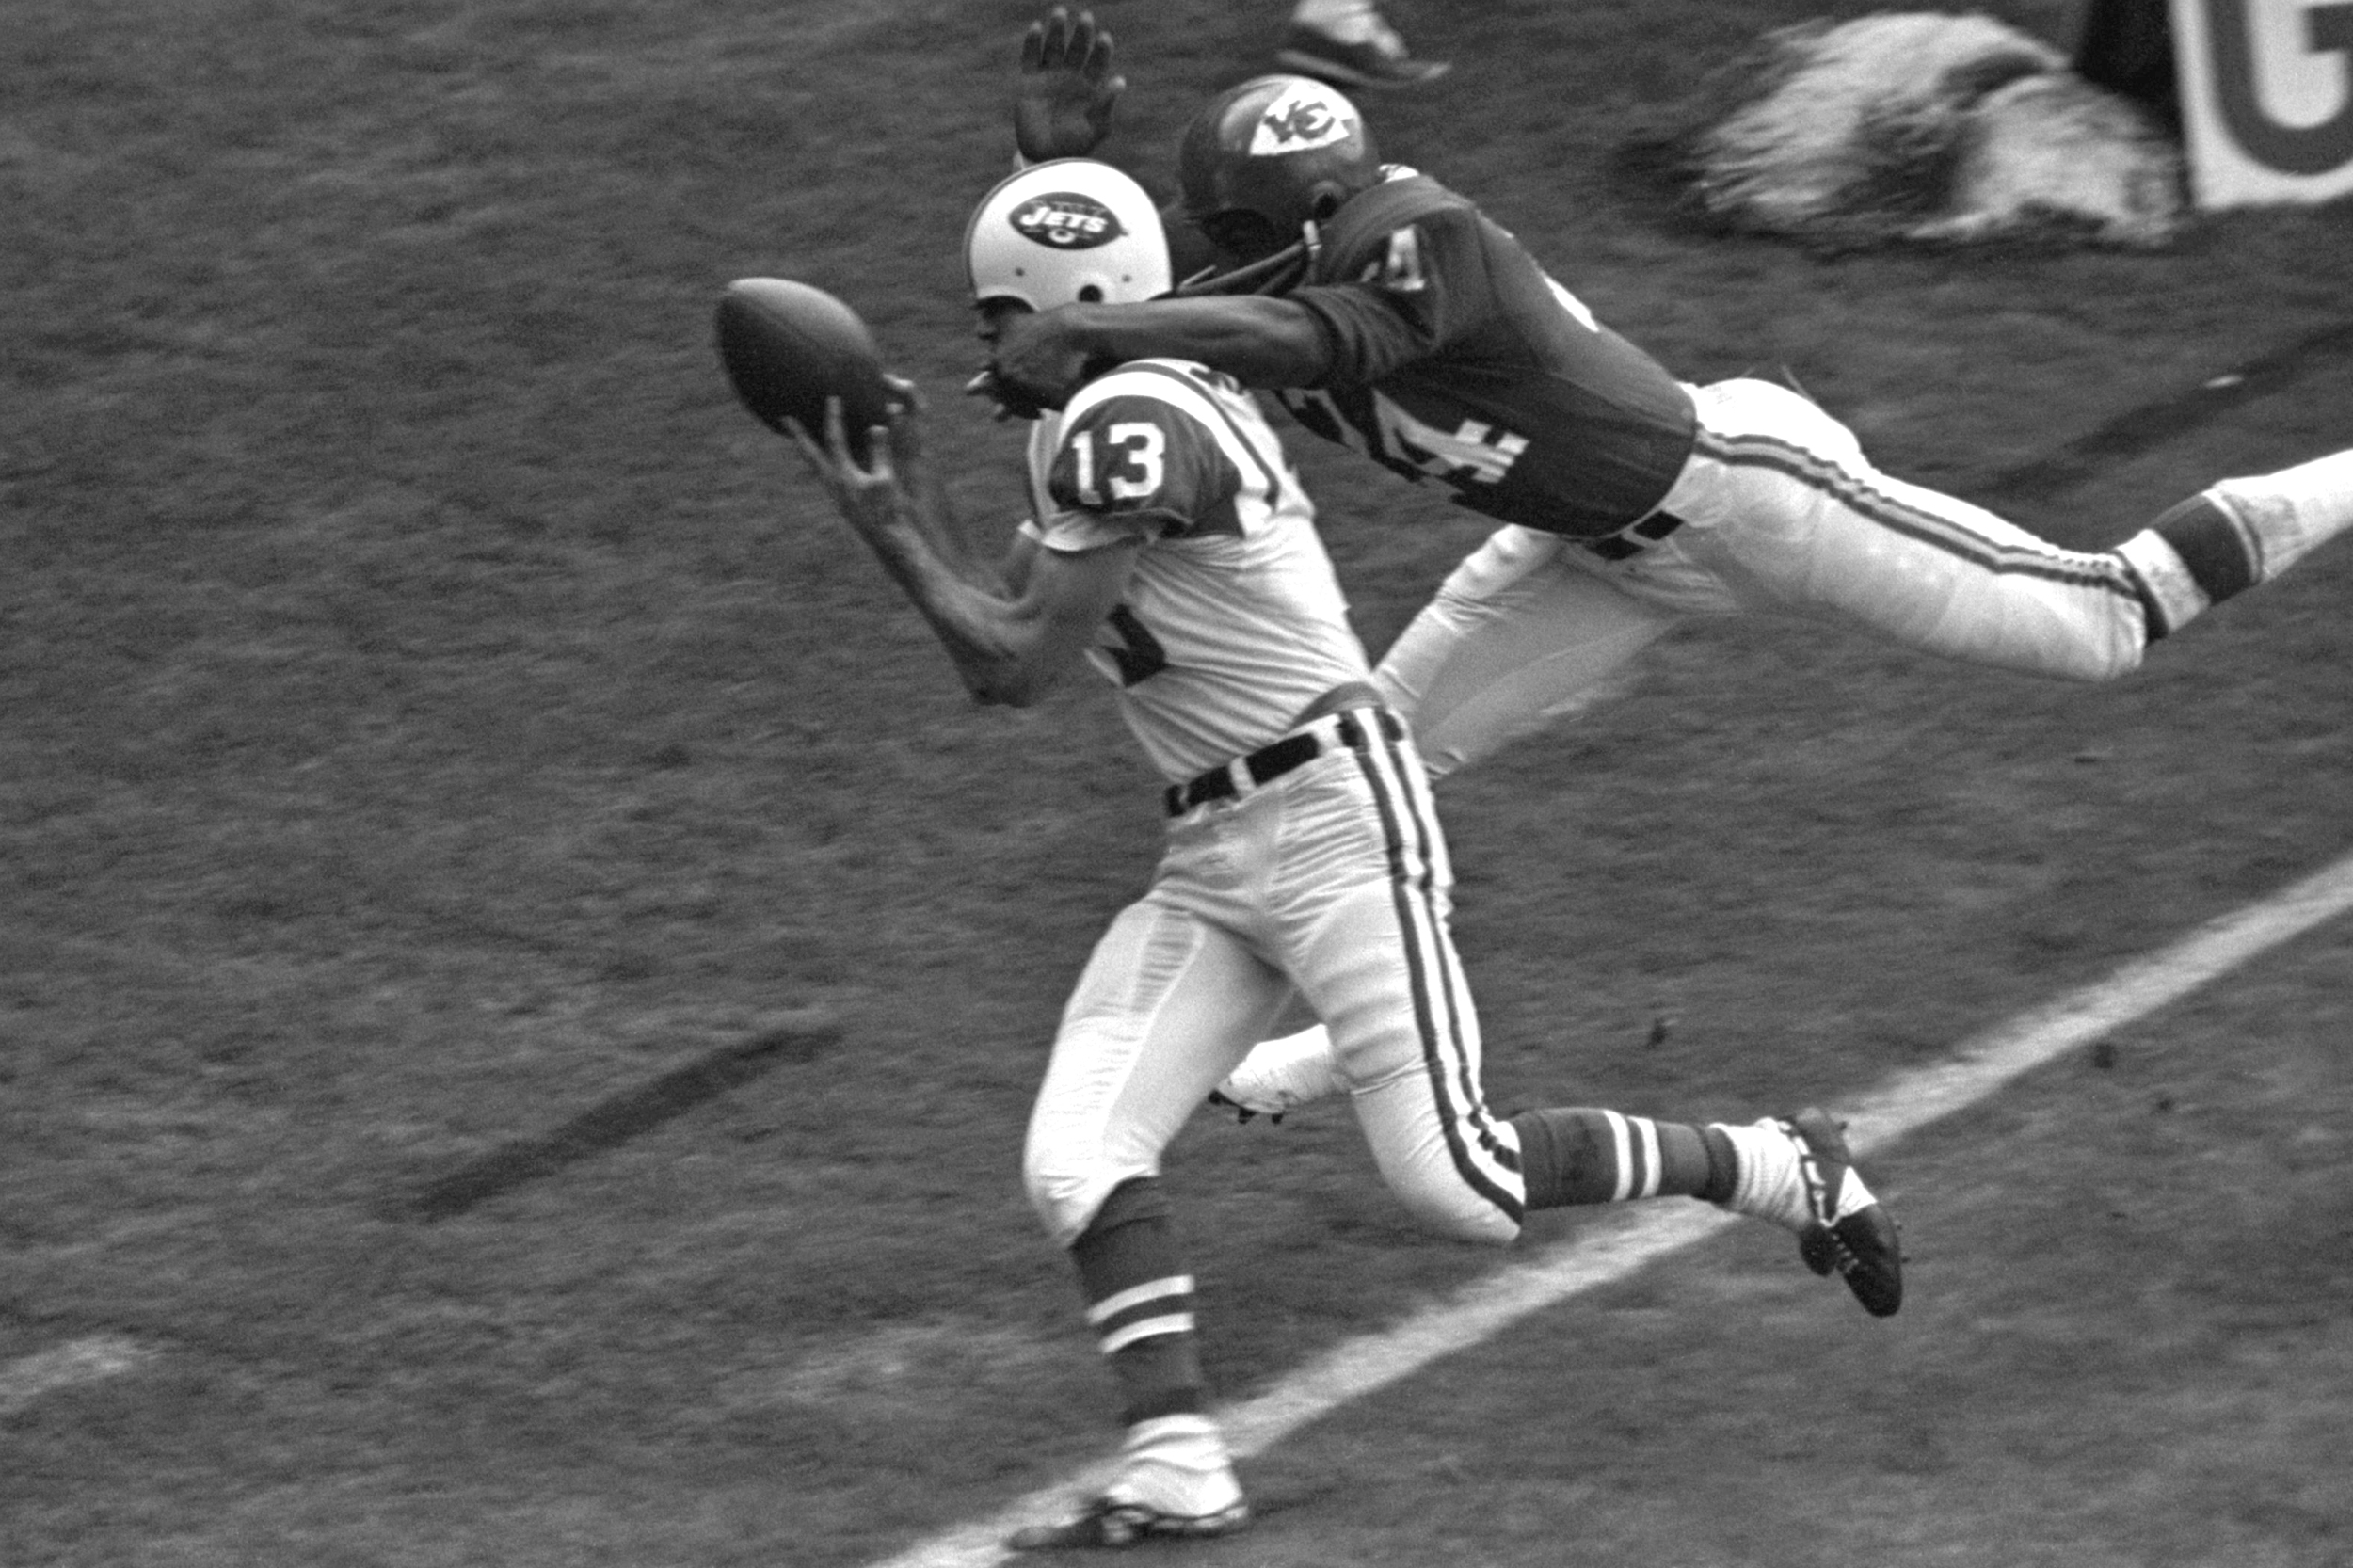 Wide receiver Don Maynard #13 of the New York Jets catches a touchdown pass in front of defensive back Fred Williamson #24 of the Kansas City Chiefs during the first quarter of a game on November 7, 1965 at Municipal Stadium in Kansas City, Missouri.